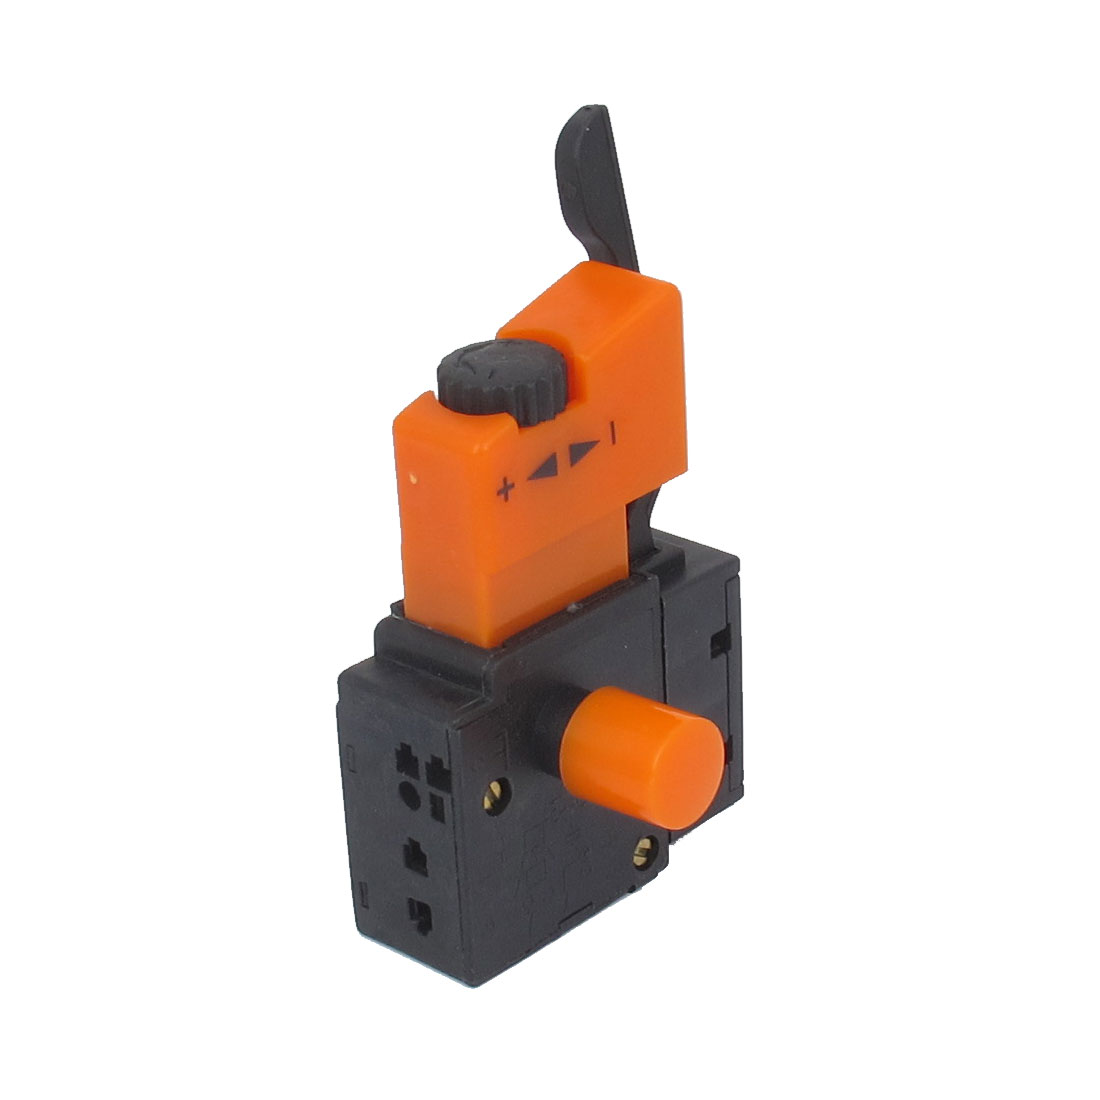 Locking AC 250V 6A Trigger Switch with Speed Control for Electric Hand Drill